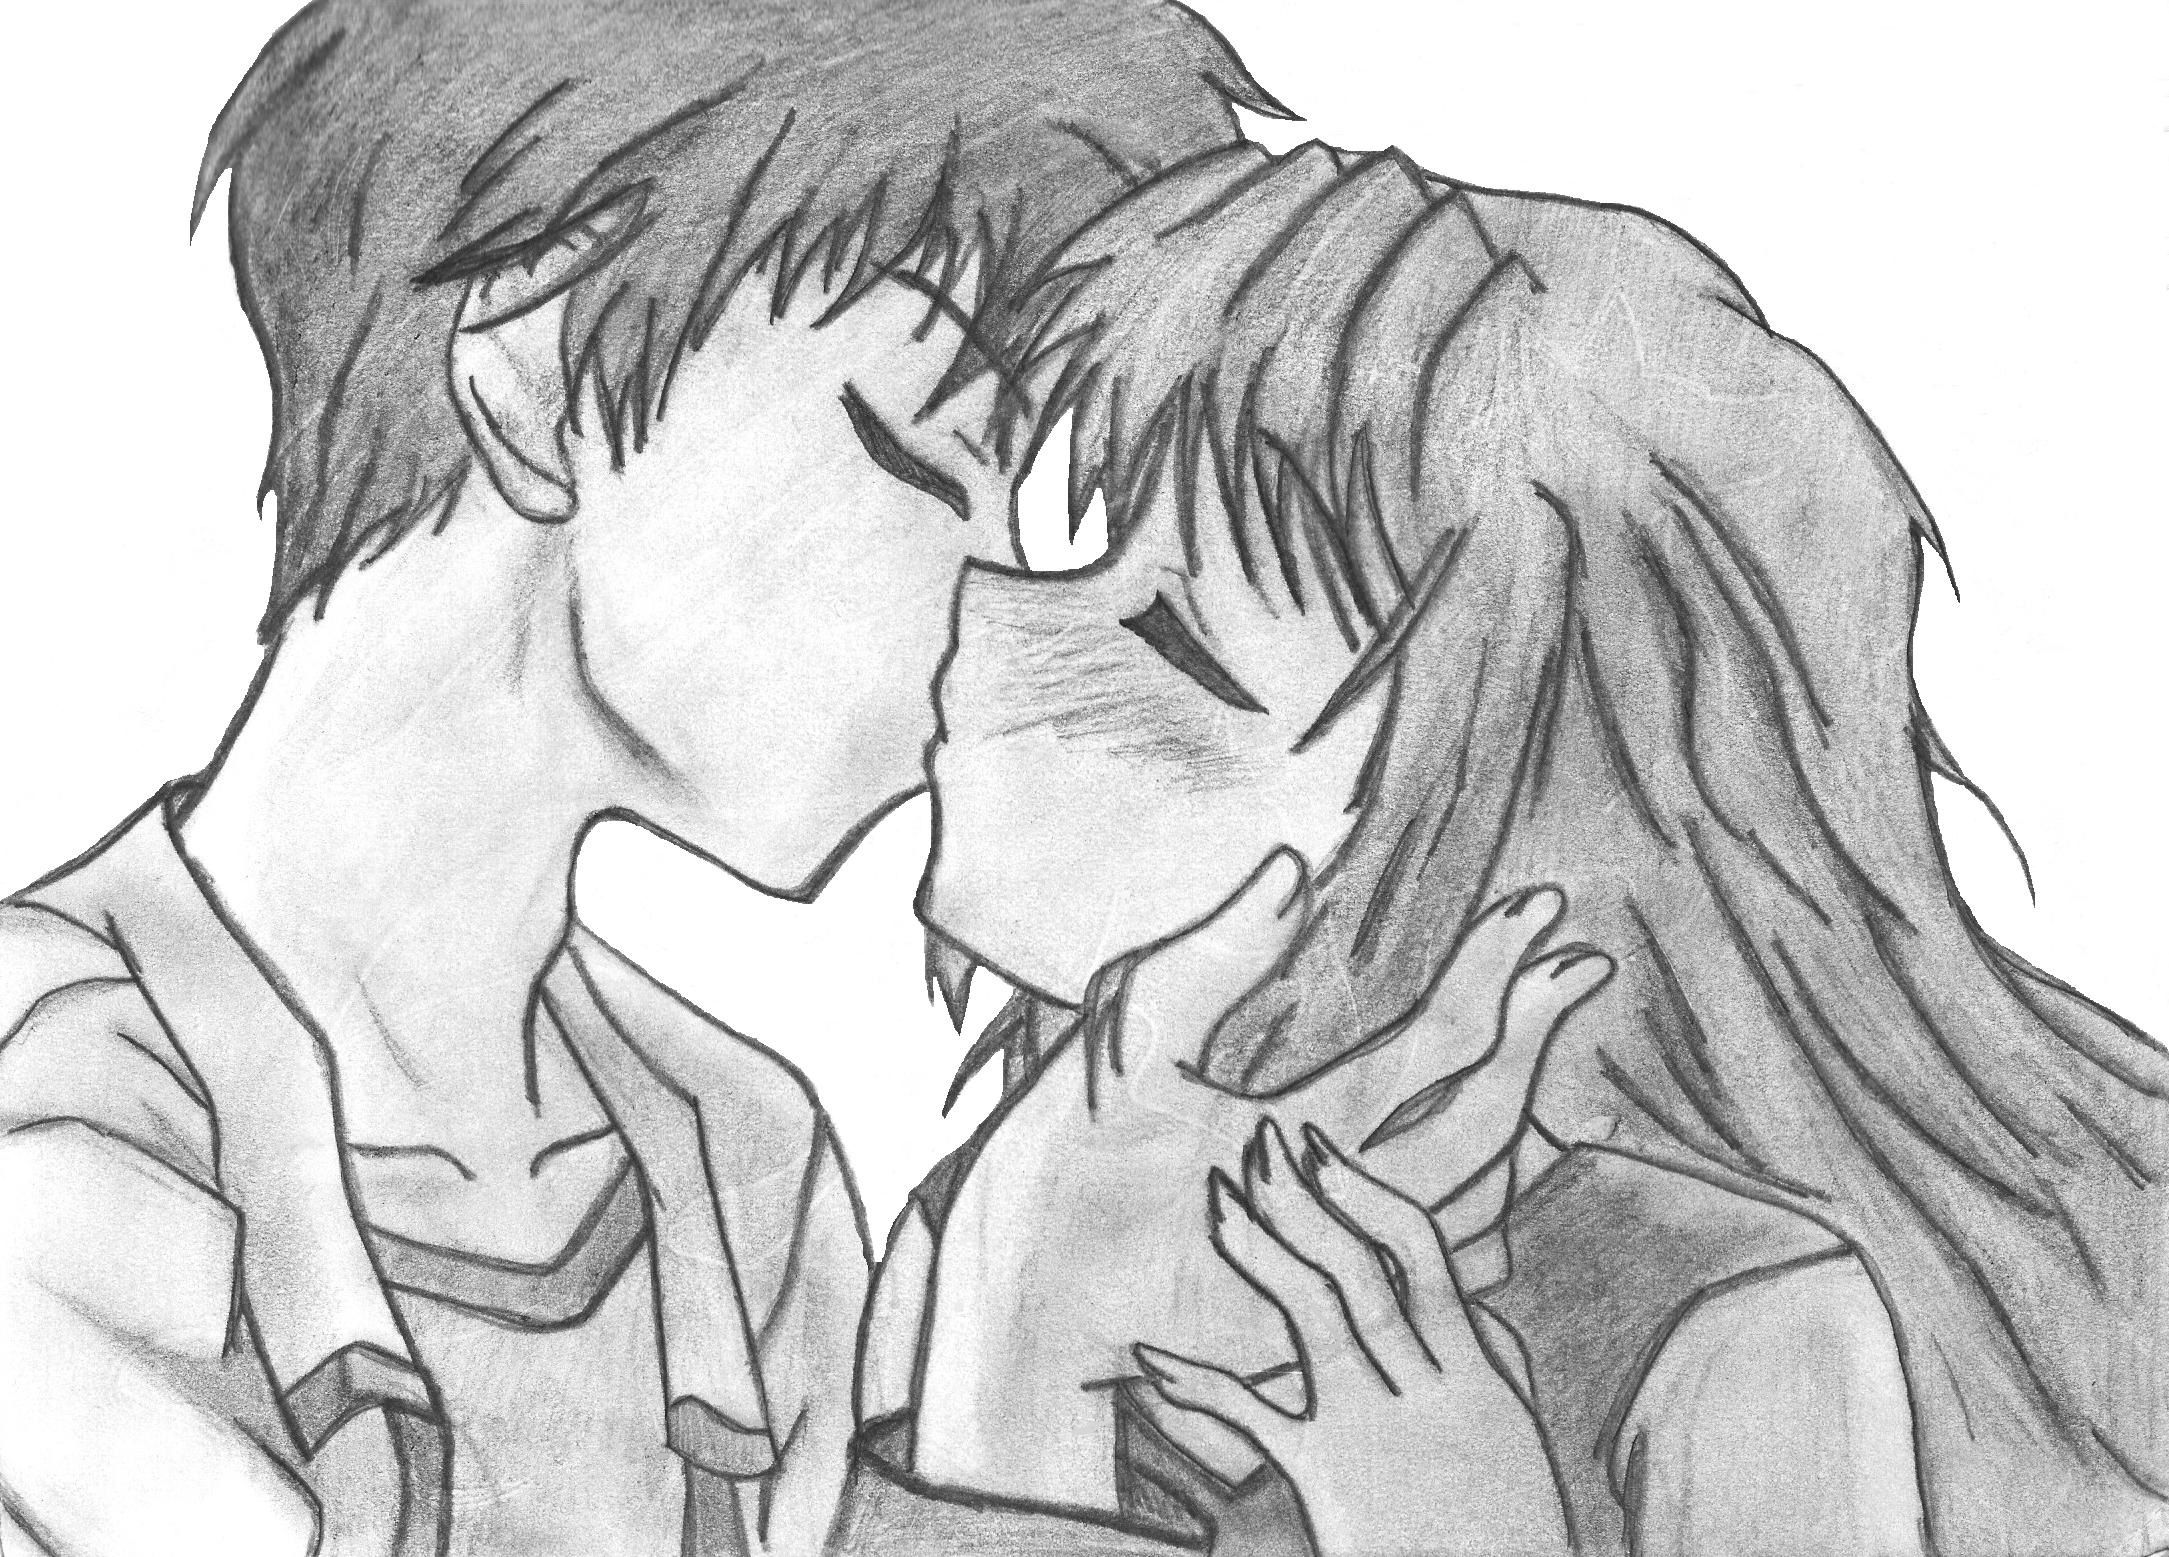 Drawing kiss anime couple hd wallpaper fille manga dessin bricolage baisers dessins animés